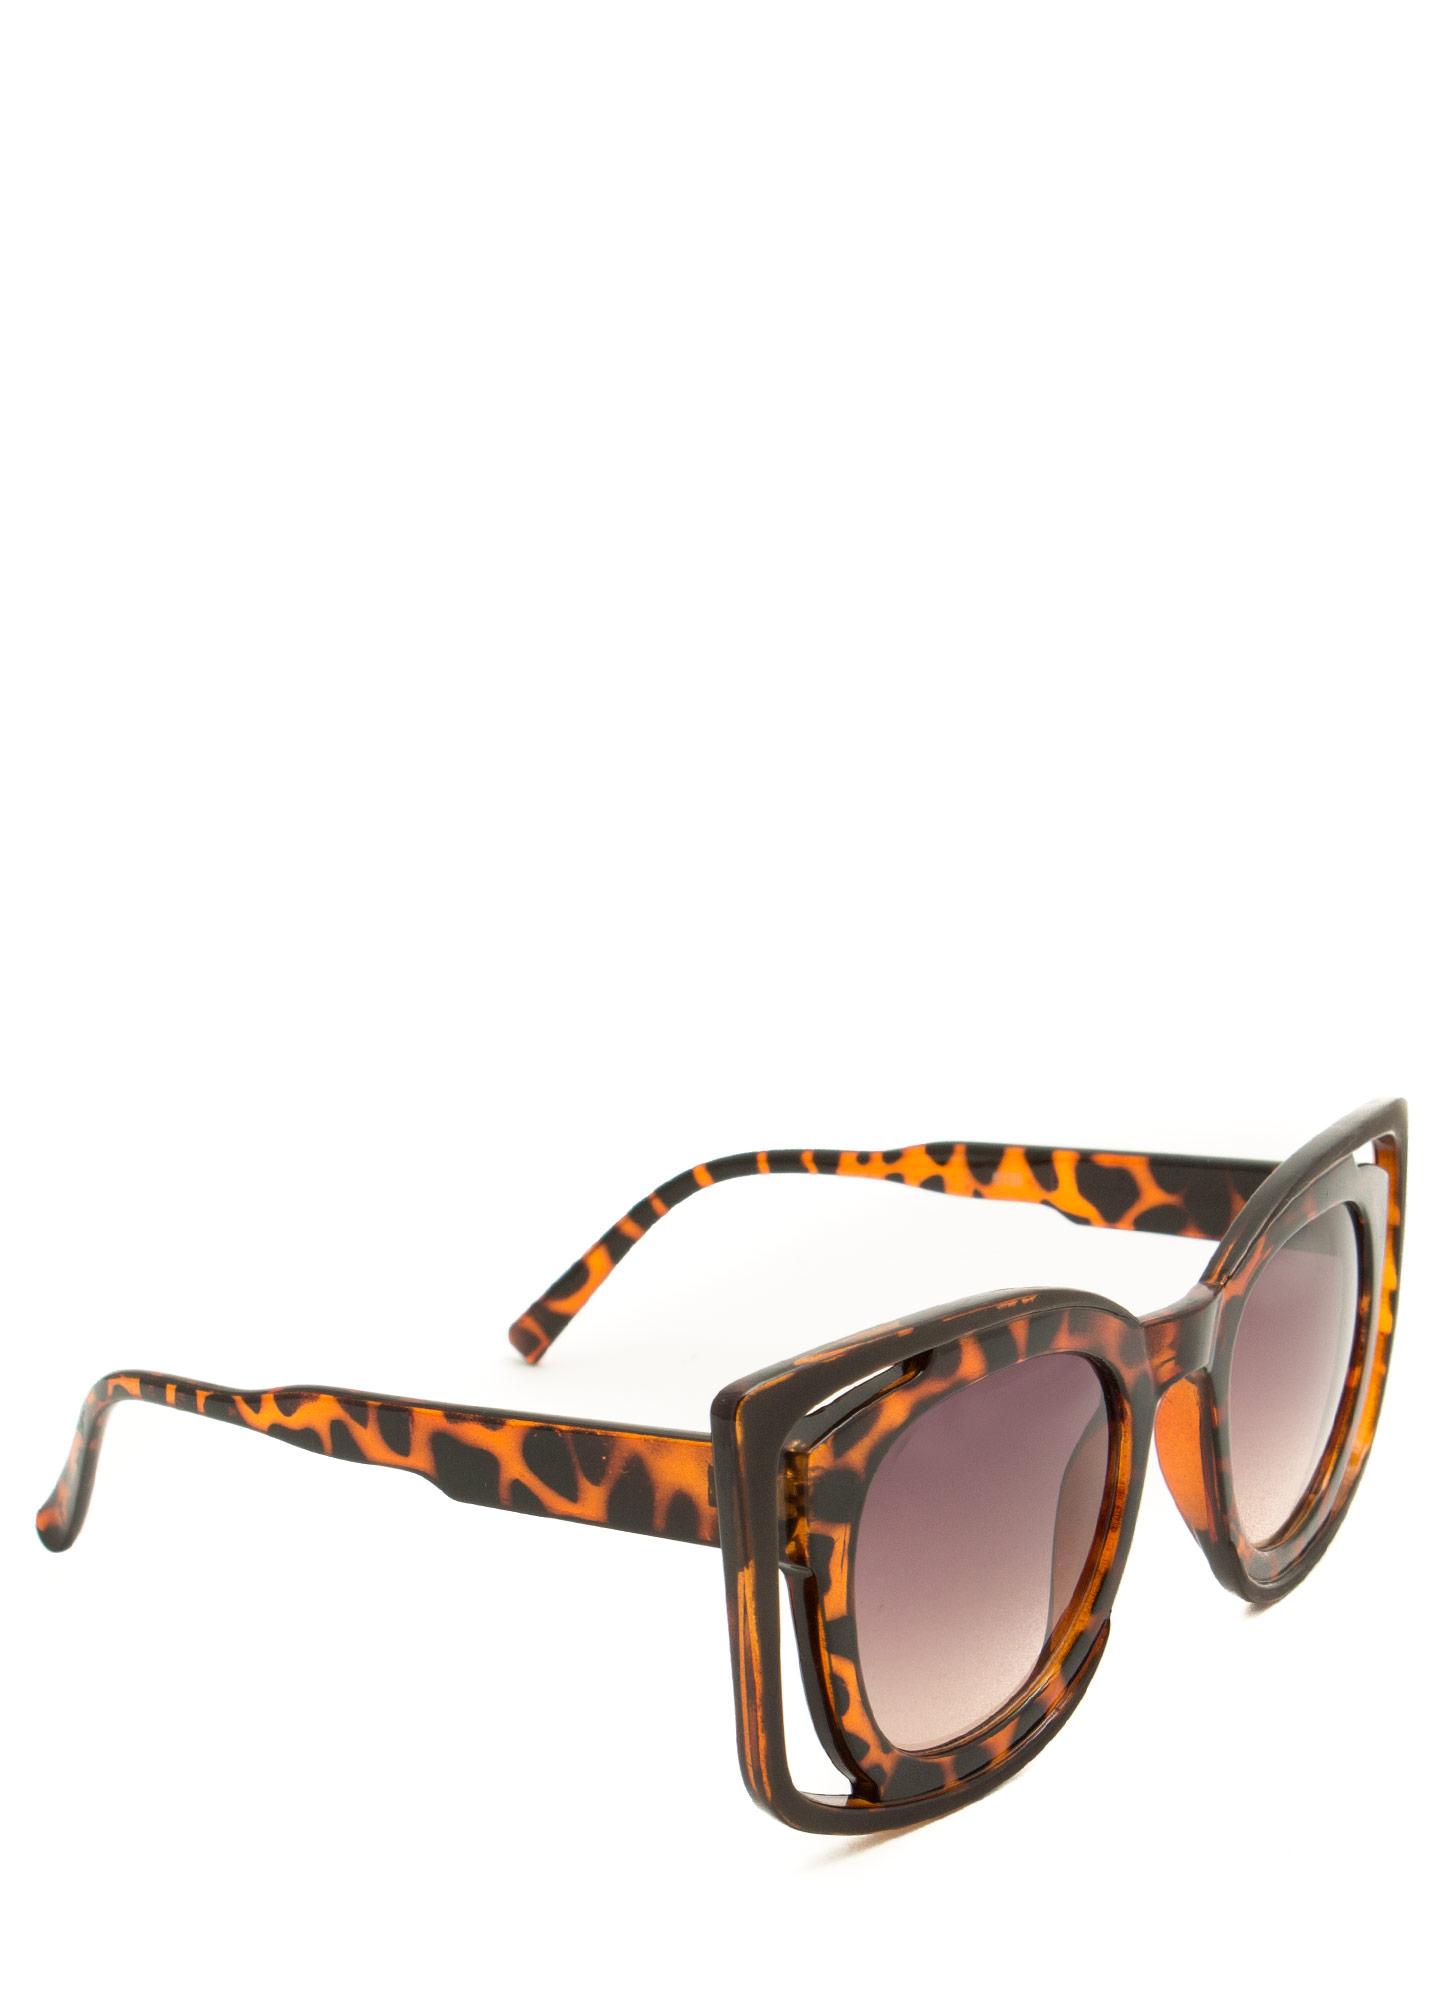 Double Frame Squared Sunglasses TORTOISE